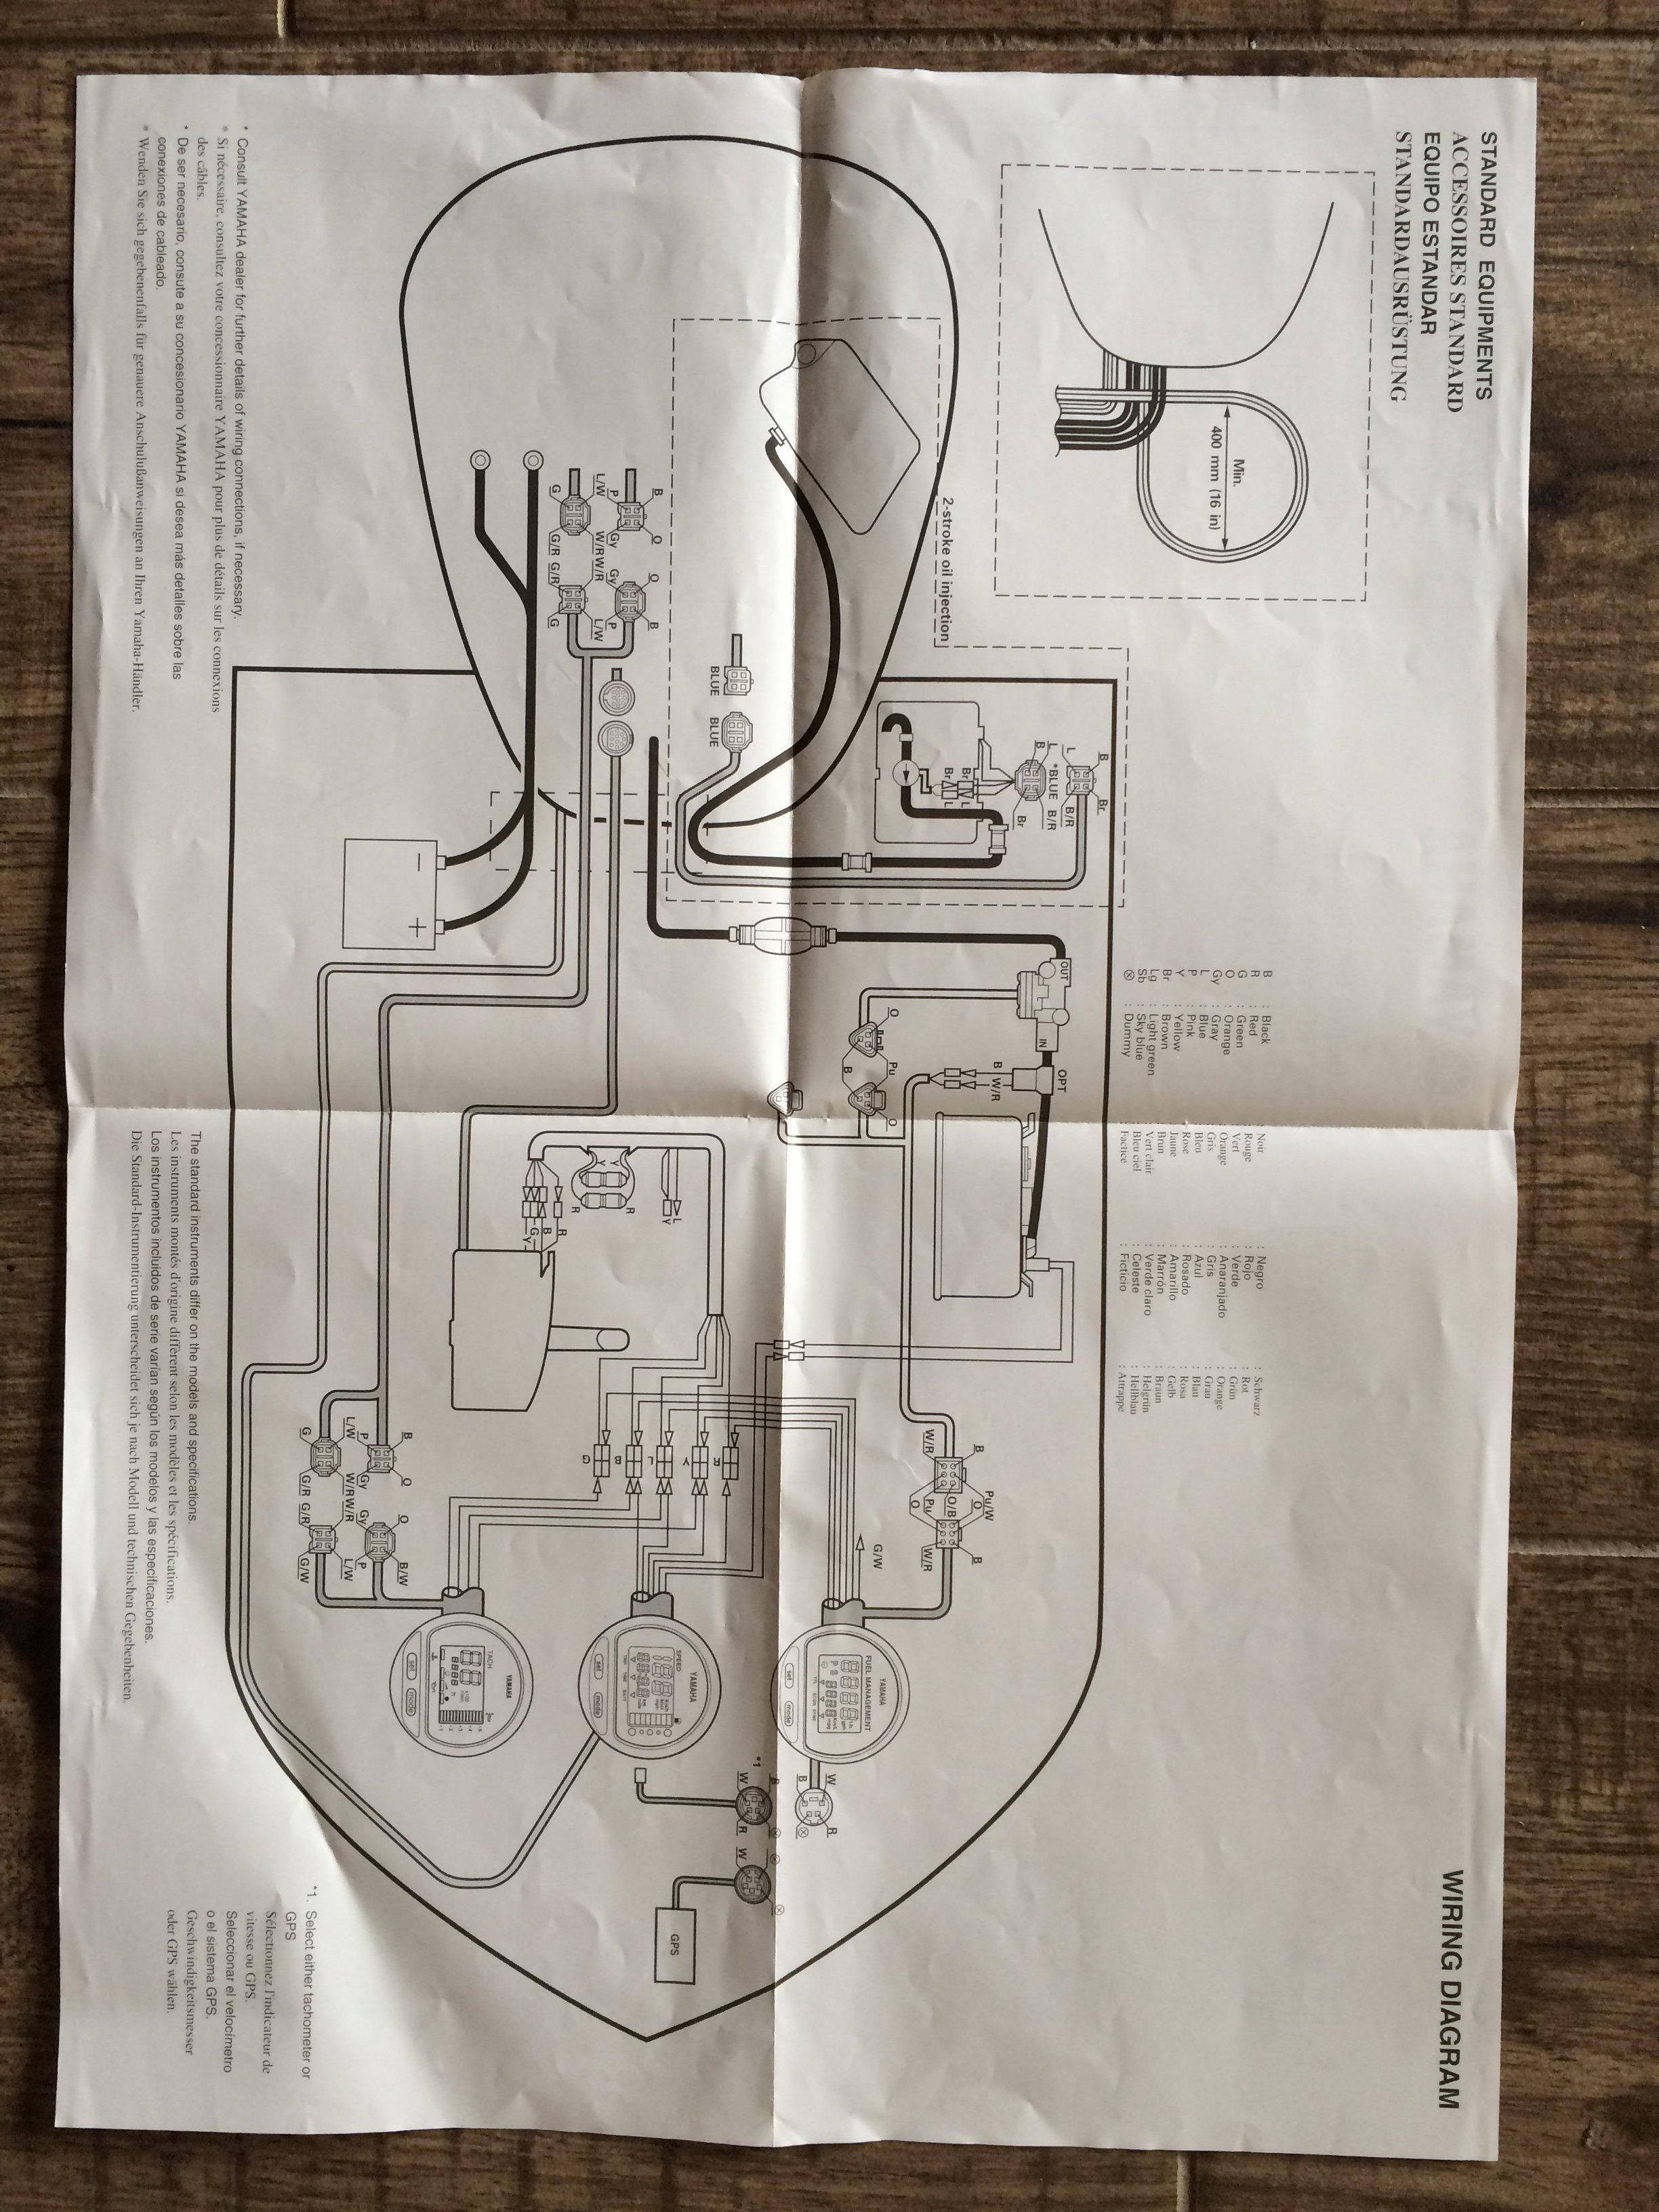 Hurricane fun deck wiring diagram and